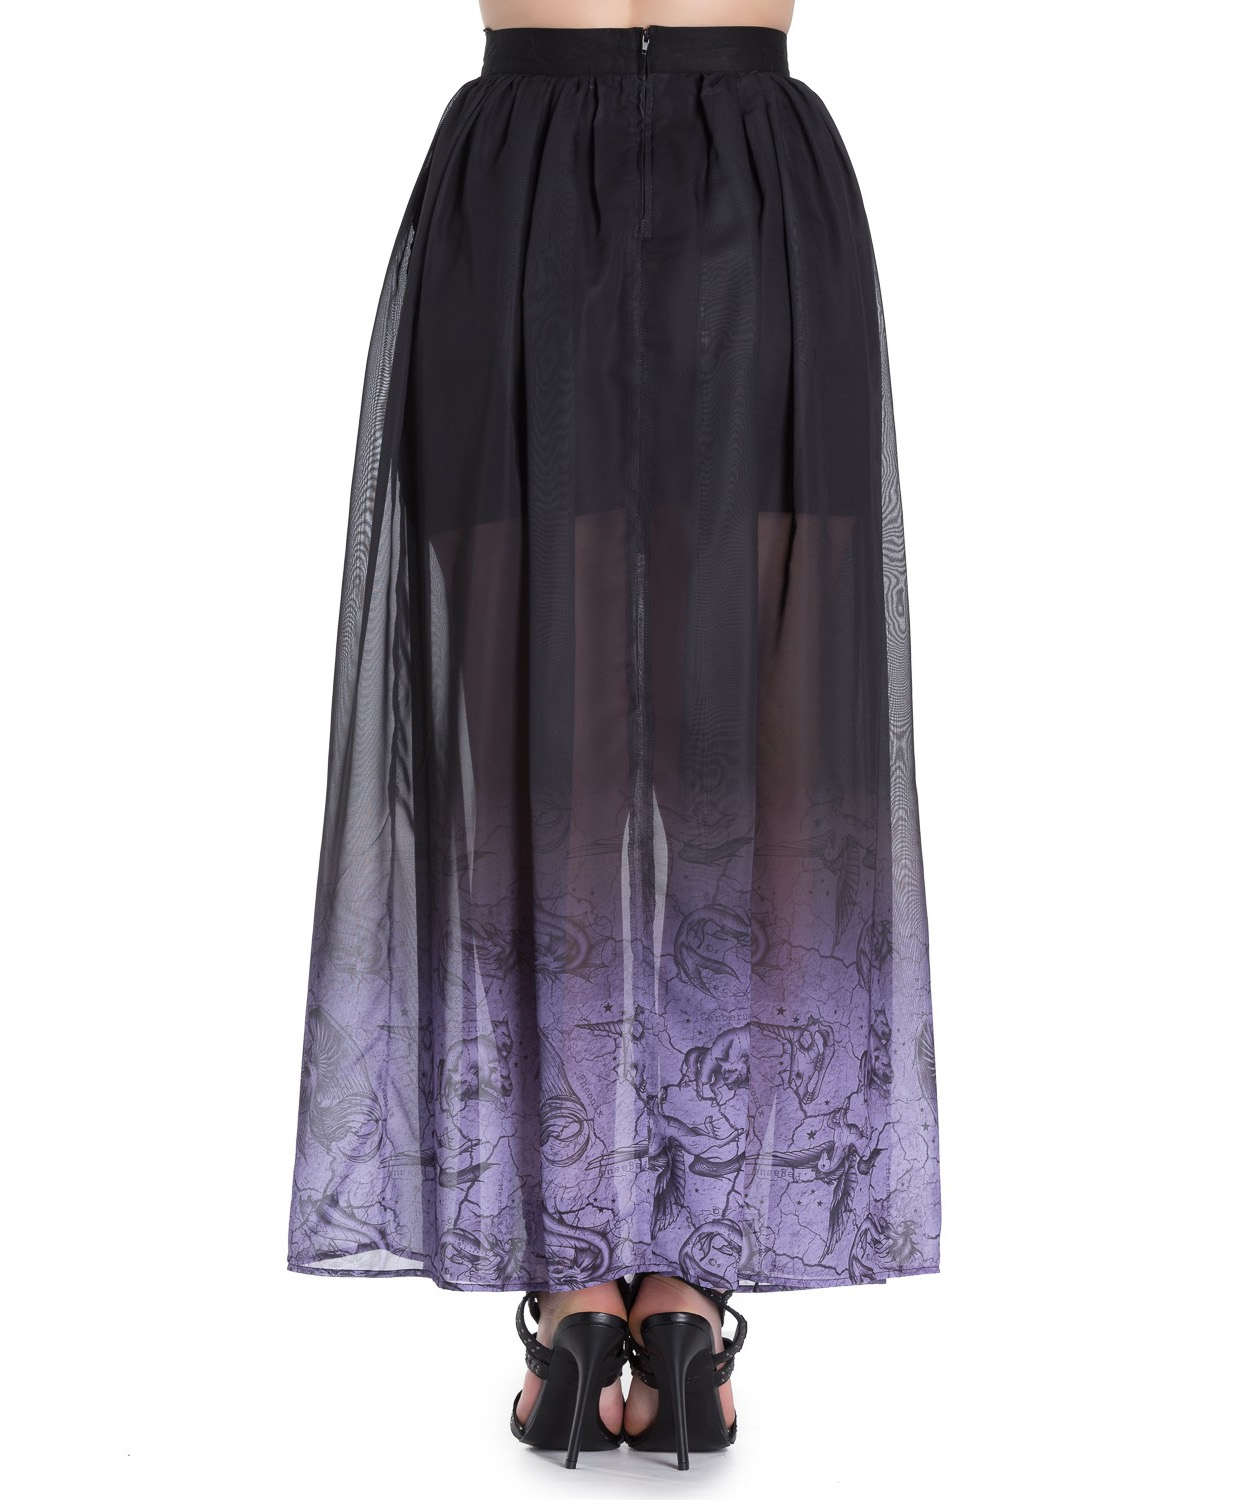 Hell-Bunny-Spin-Doctor-Goth-Purple-Mystical-EVADINE-Maxi-Skirt-All-Sizes thumbnail 17